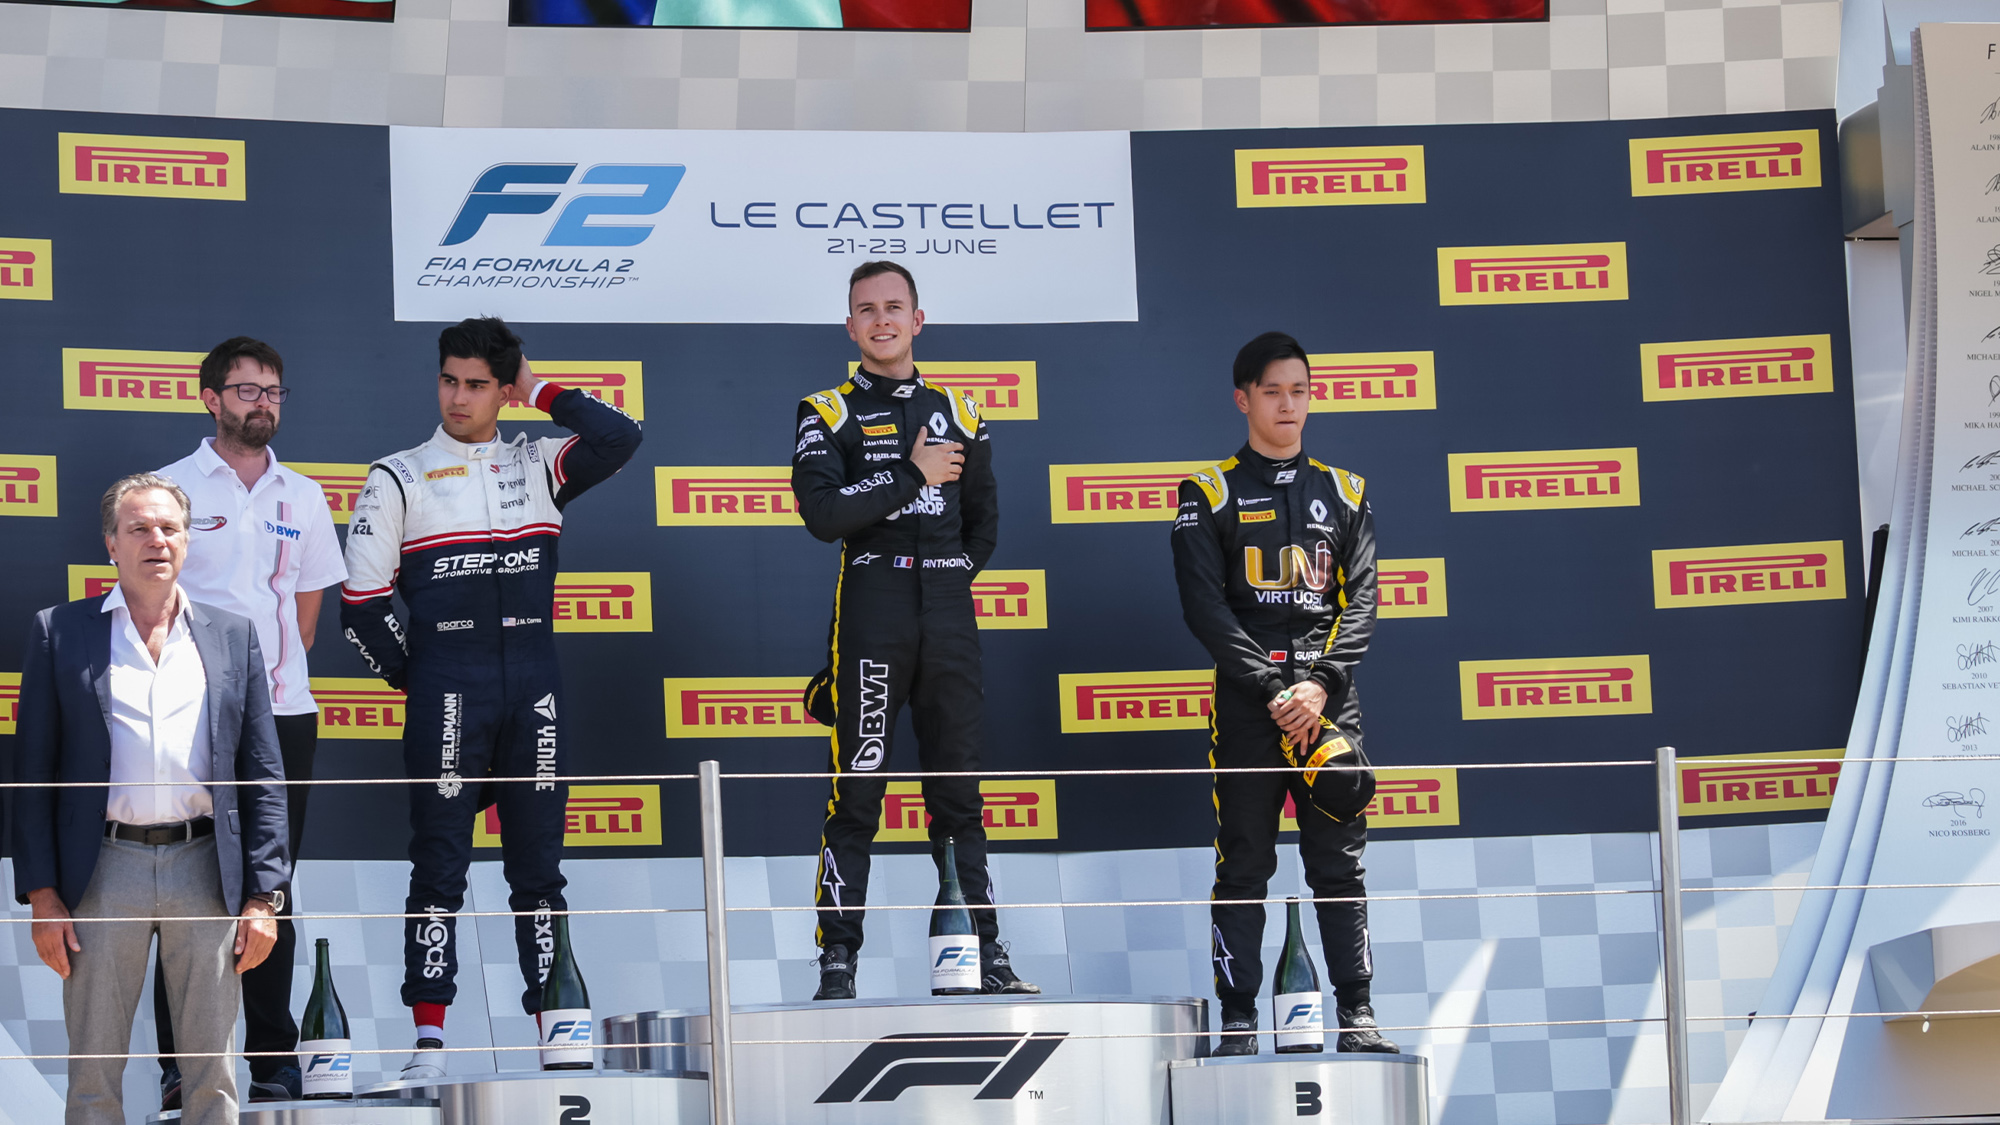 Juan Manuel Correa and Anthopine Hubert on the F2 podium at Paul Ricard in 2019